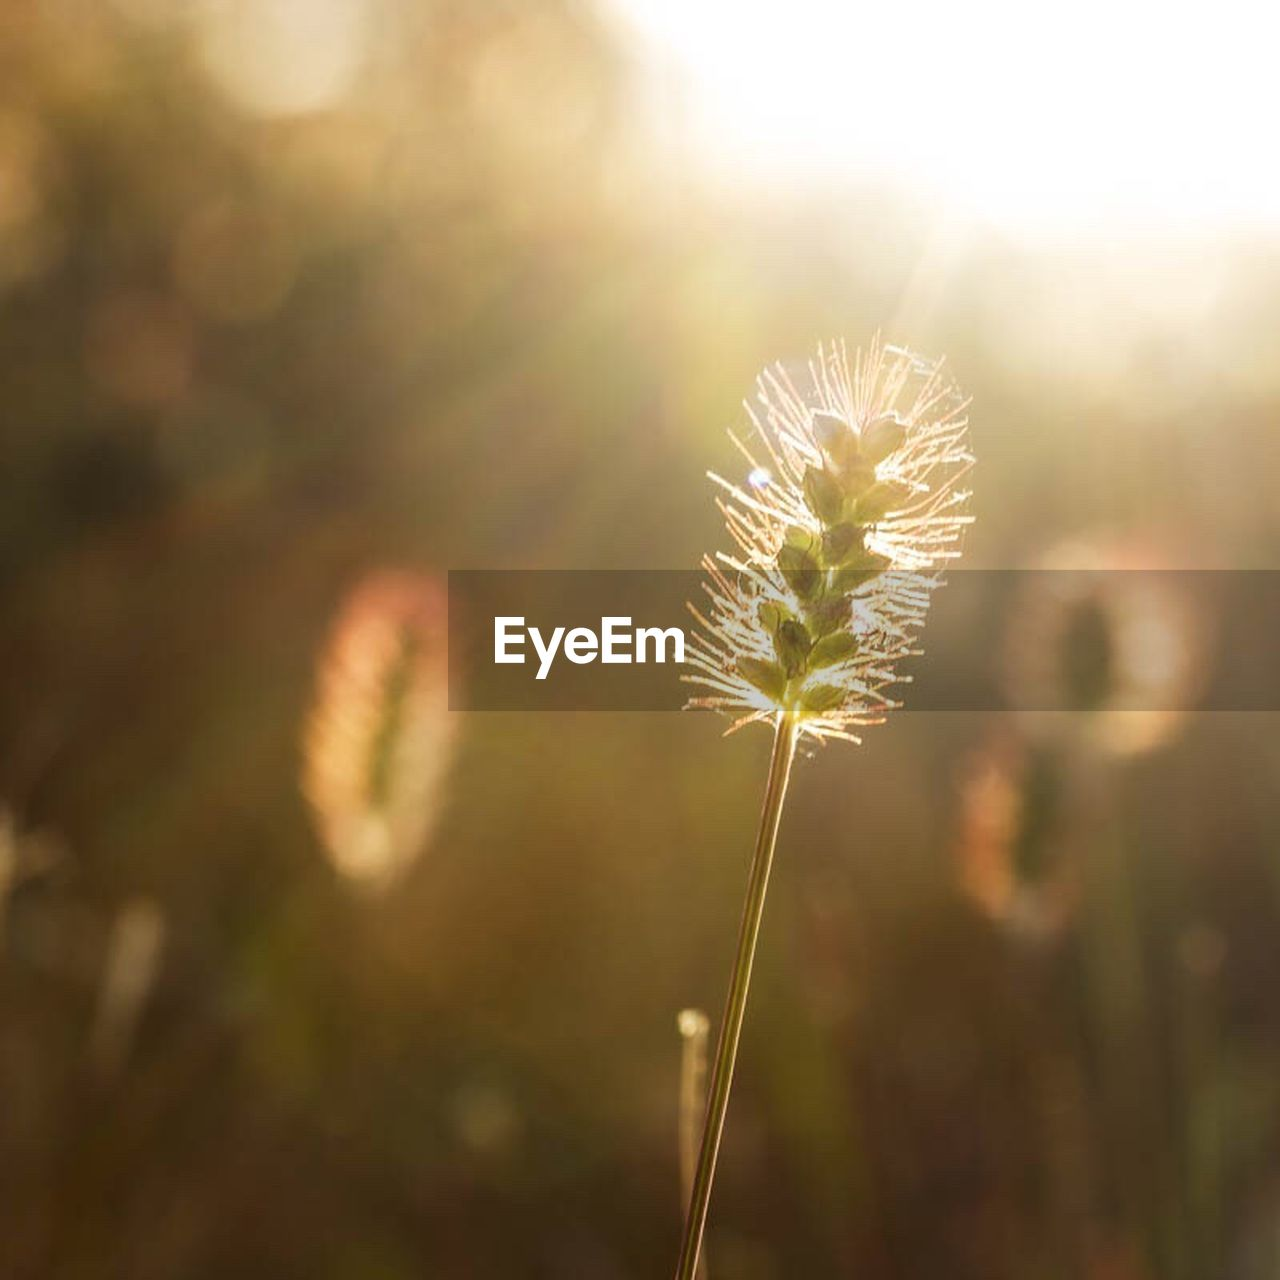 growth, nature, dandelion, flower, plant, fragility, field, focus on foreground, freshness, beauty in nature, sunlight, no people, outdoors, close-up, day, flower head, thistle, sky